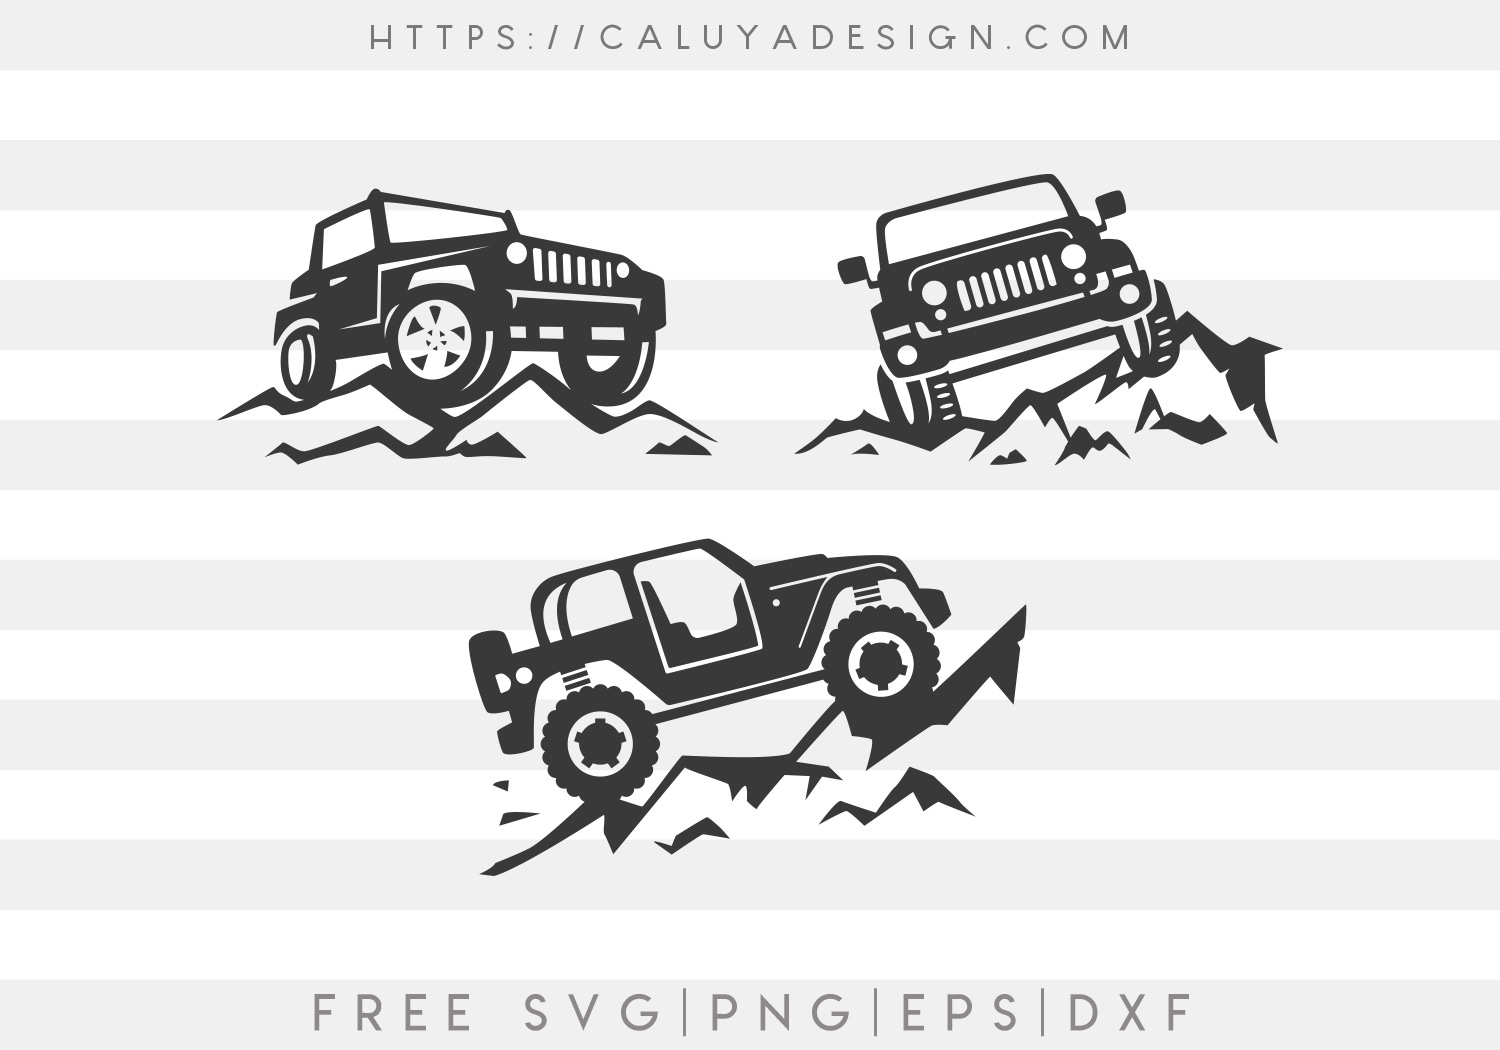 Jeep Svg Png - Free Jeep On Mountain SVG, PNG, EPS & DXF by Caluya Design